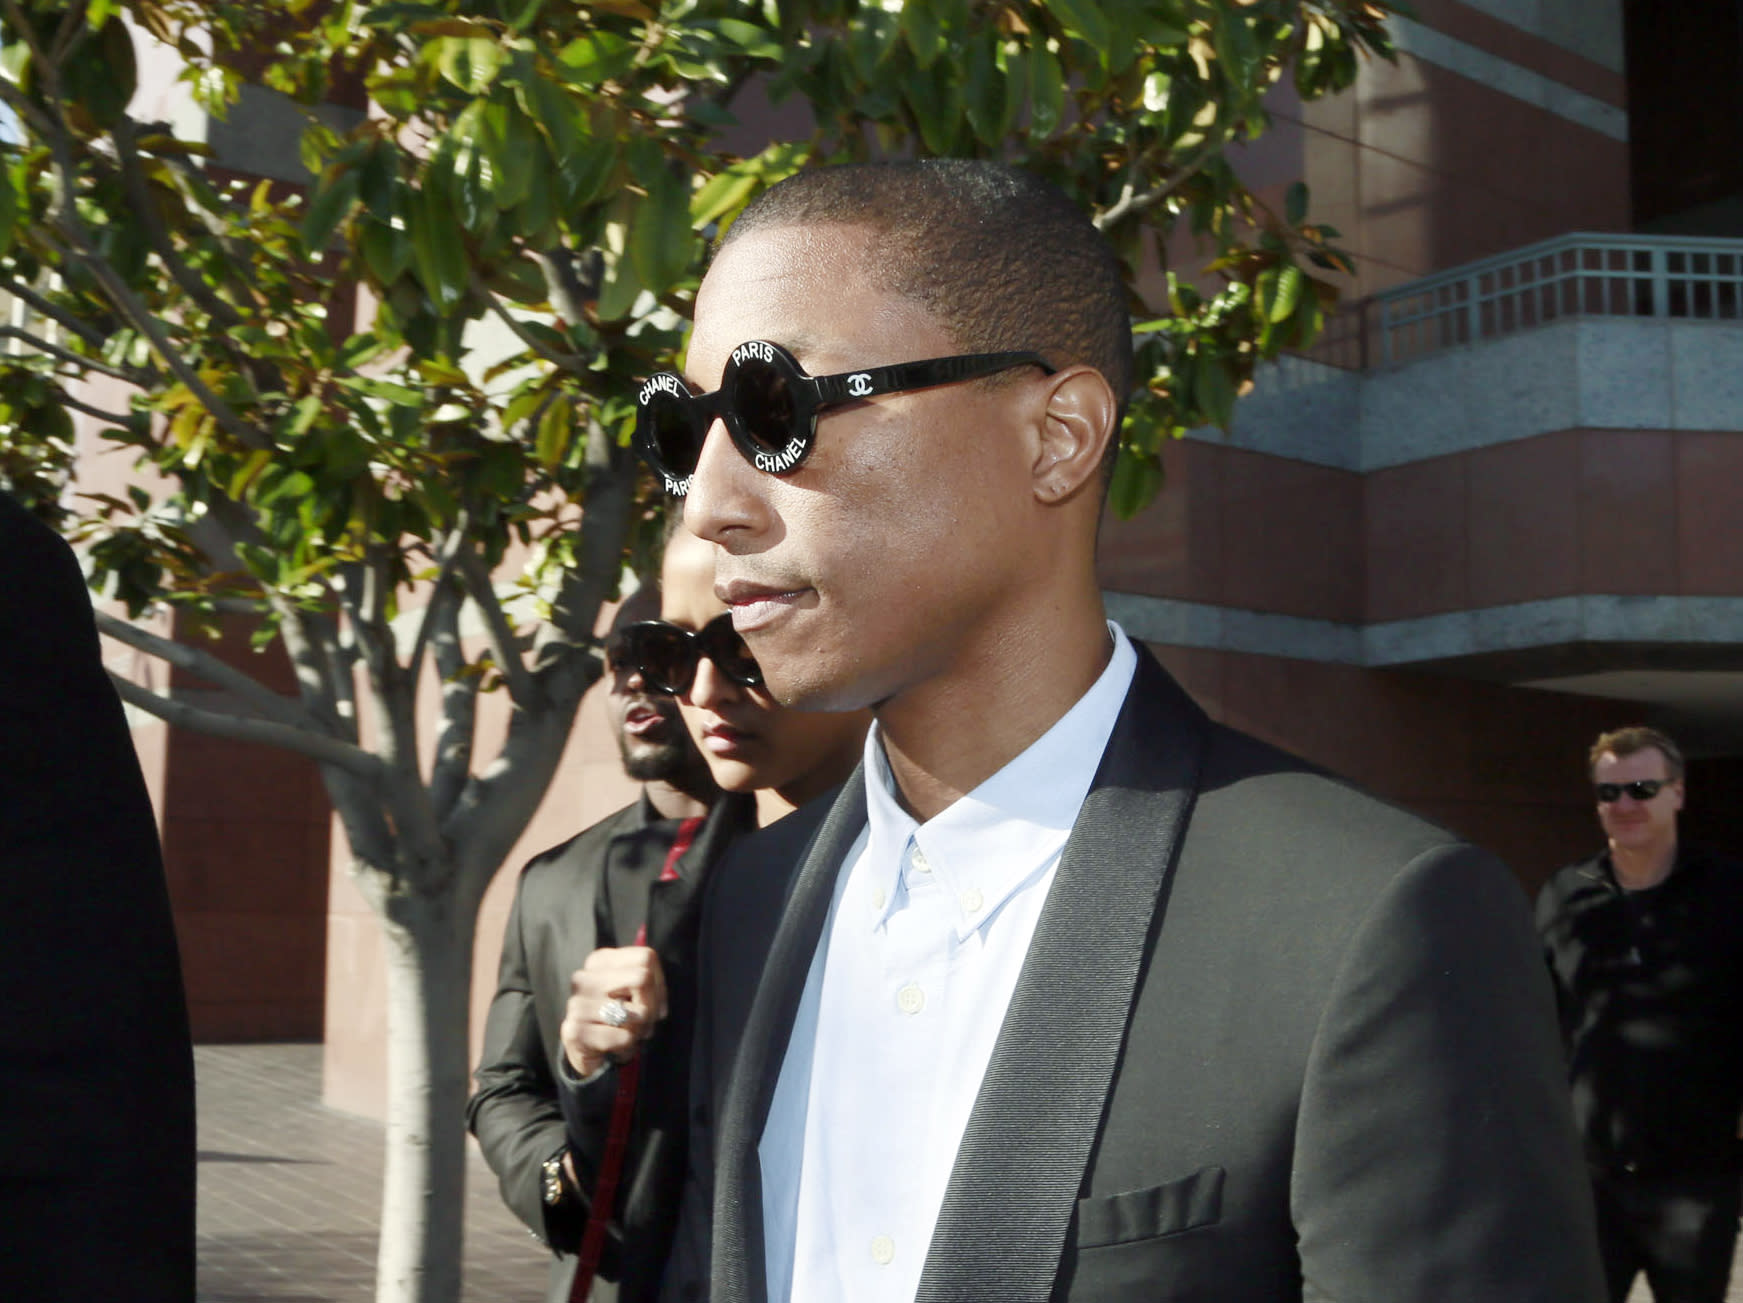 Jury resumes deliberations in 'Blurred Lines' copyright case